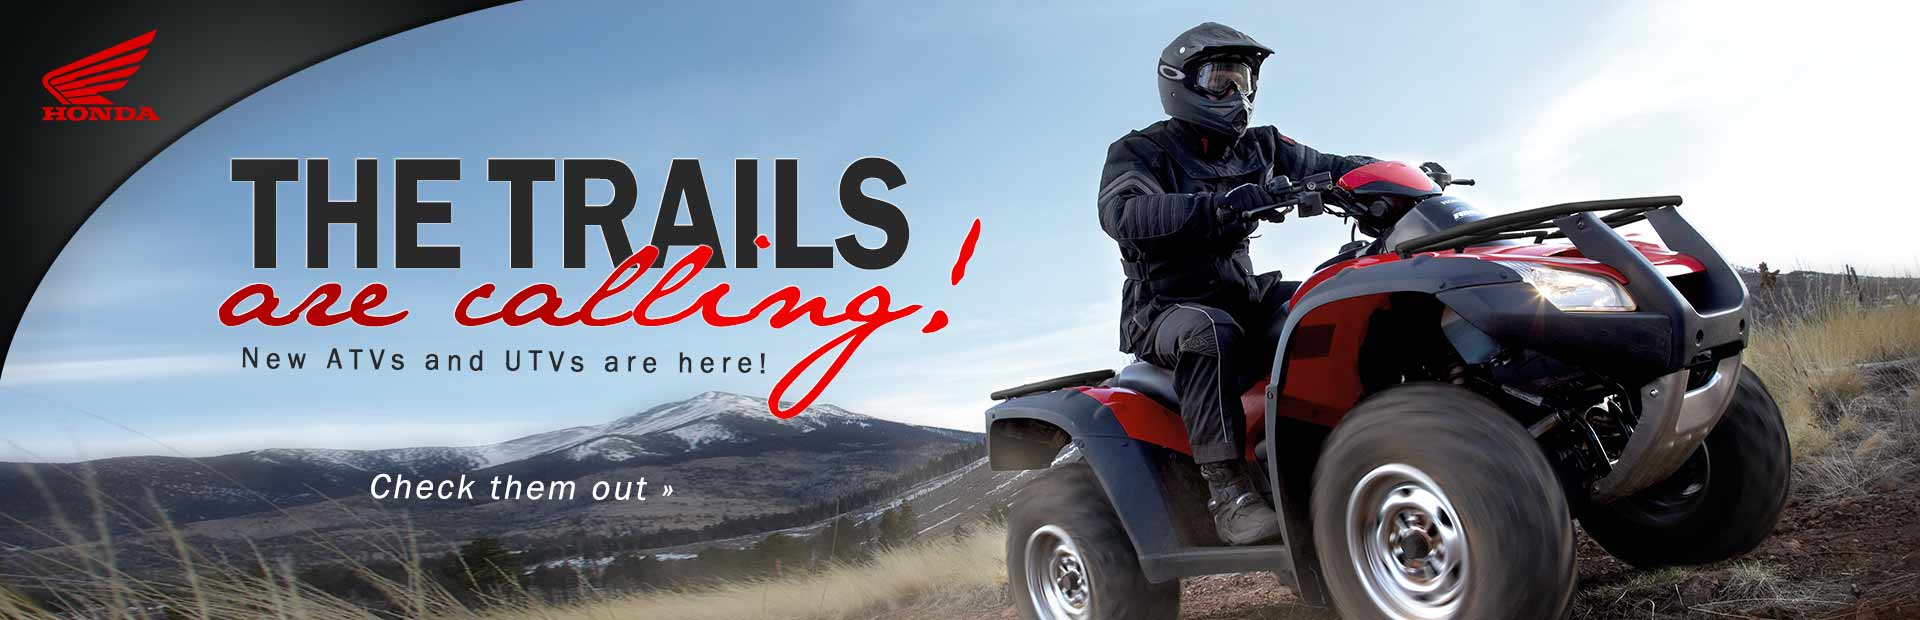 The trails are calling! Click here to check out new Honda ATVs and UTVs.